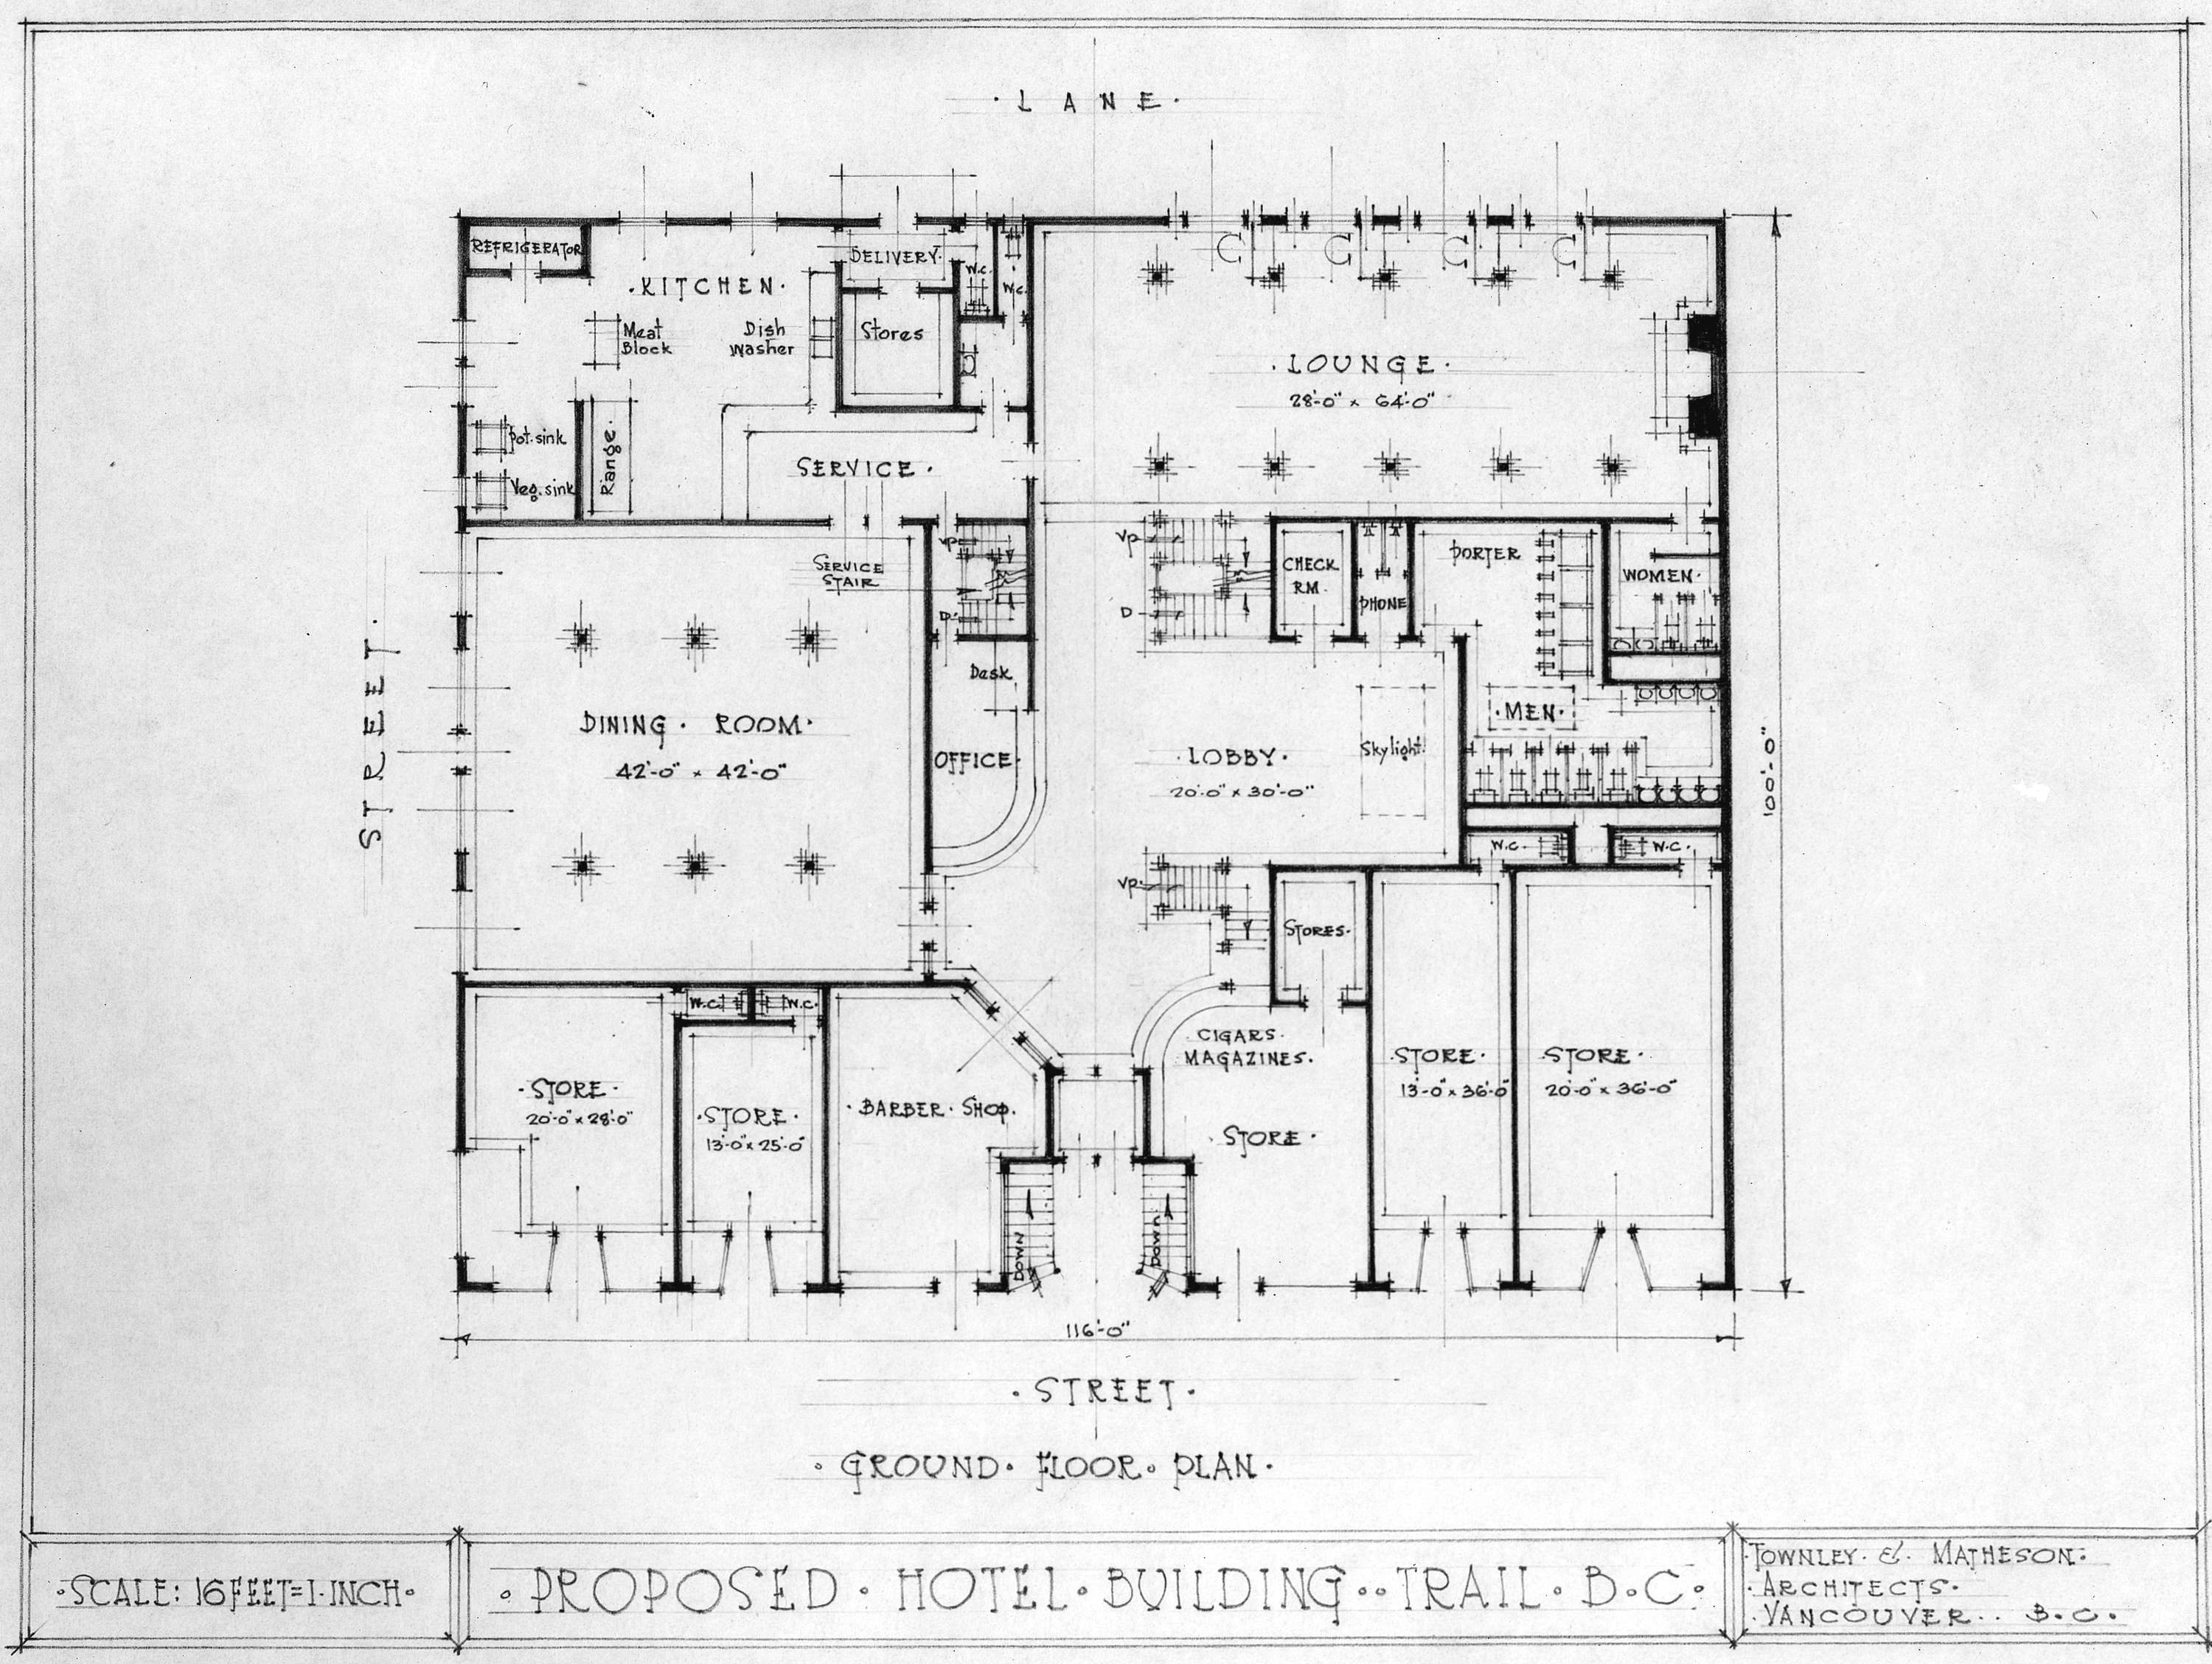 Hotel Room Designs Proposed Hotel Building Trail B C Ground Floor Plan